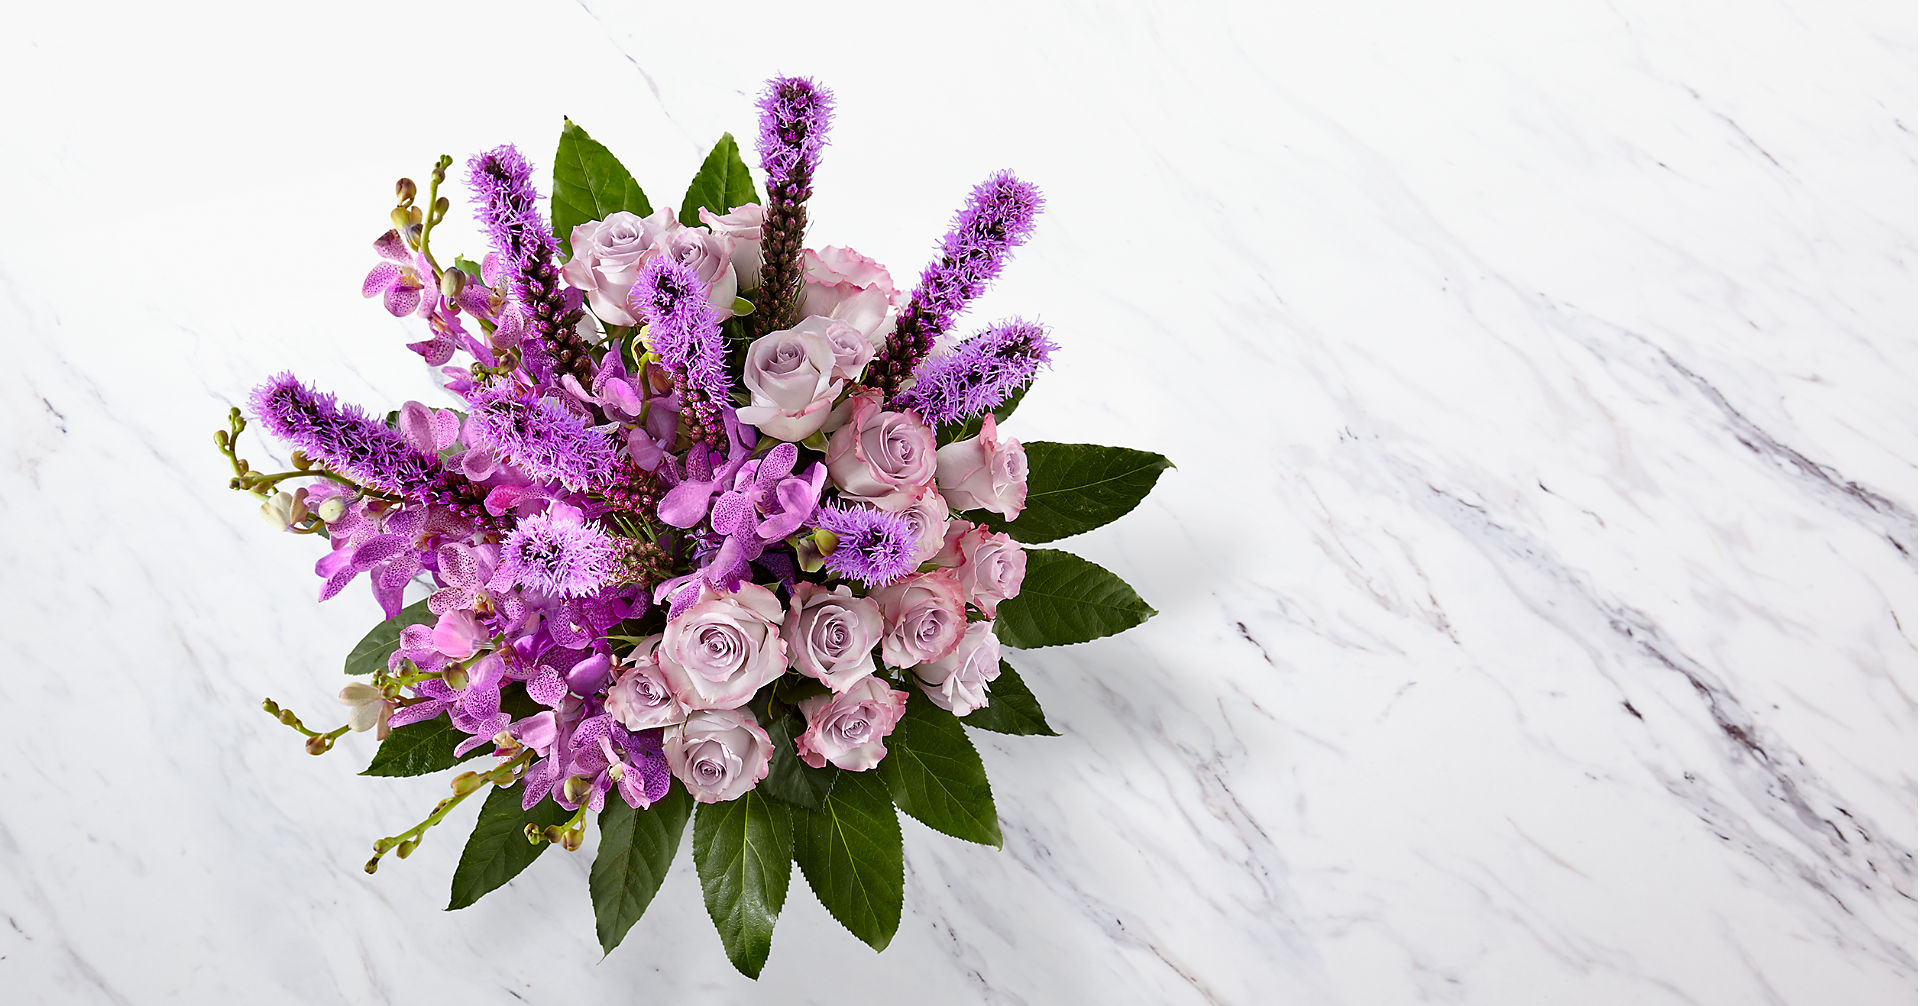 Modern Royalty™ Luxury Bouquet - Image 2 Of 4